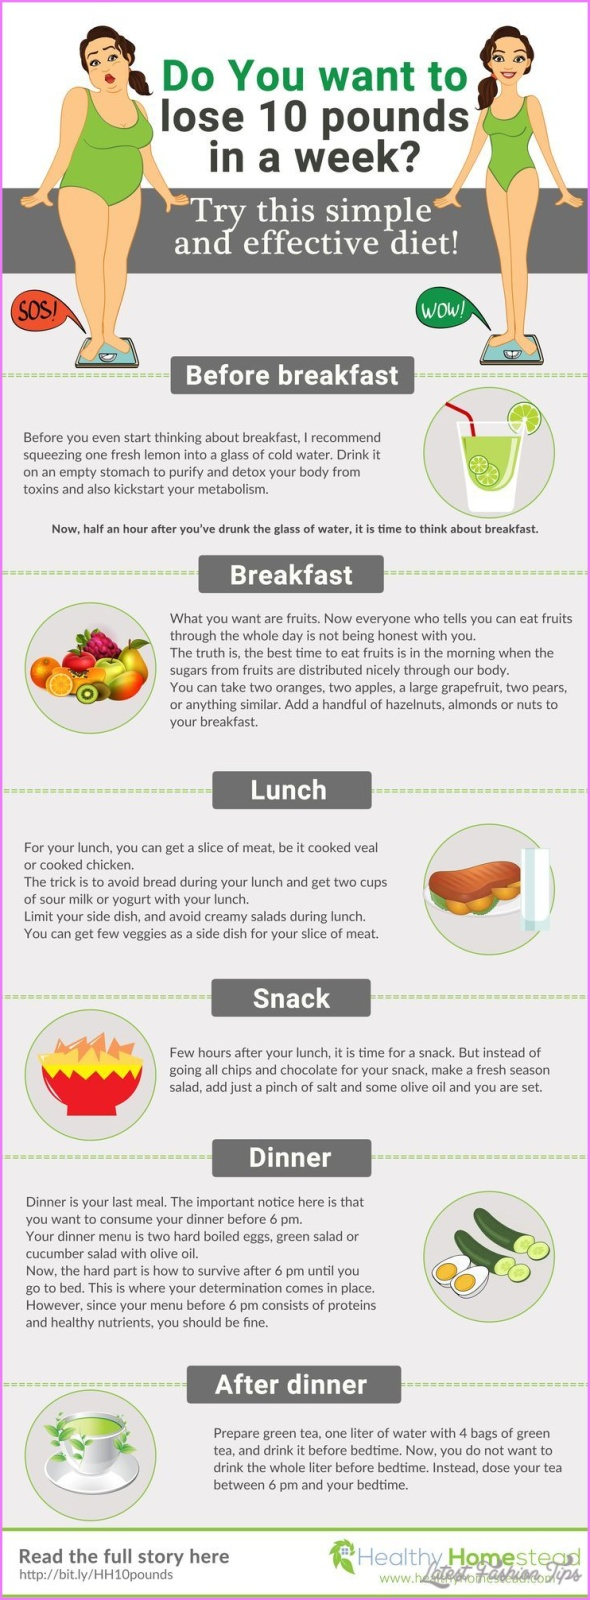 Meal plan and exercise plans for weight loss latestfashiontips meal plan and exercise plans for weight loss 2g nvjuhfo Image collections